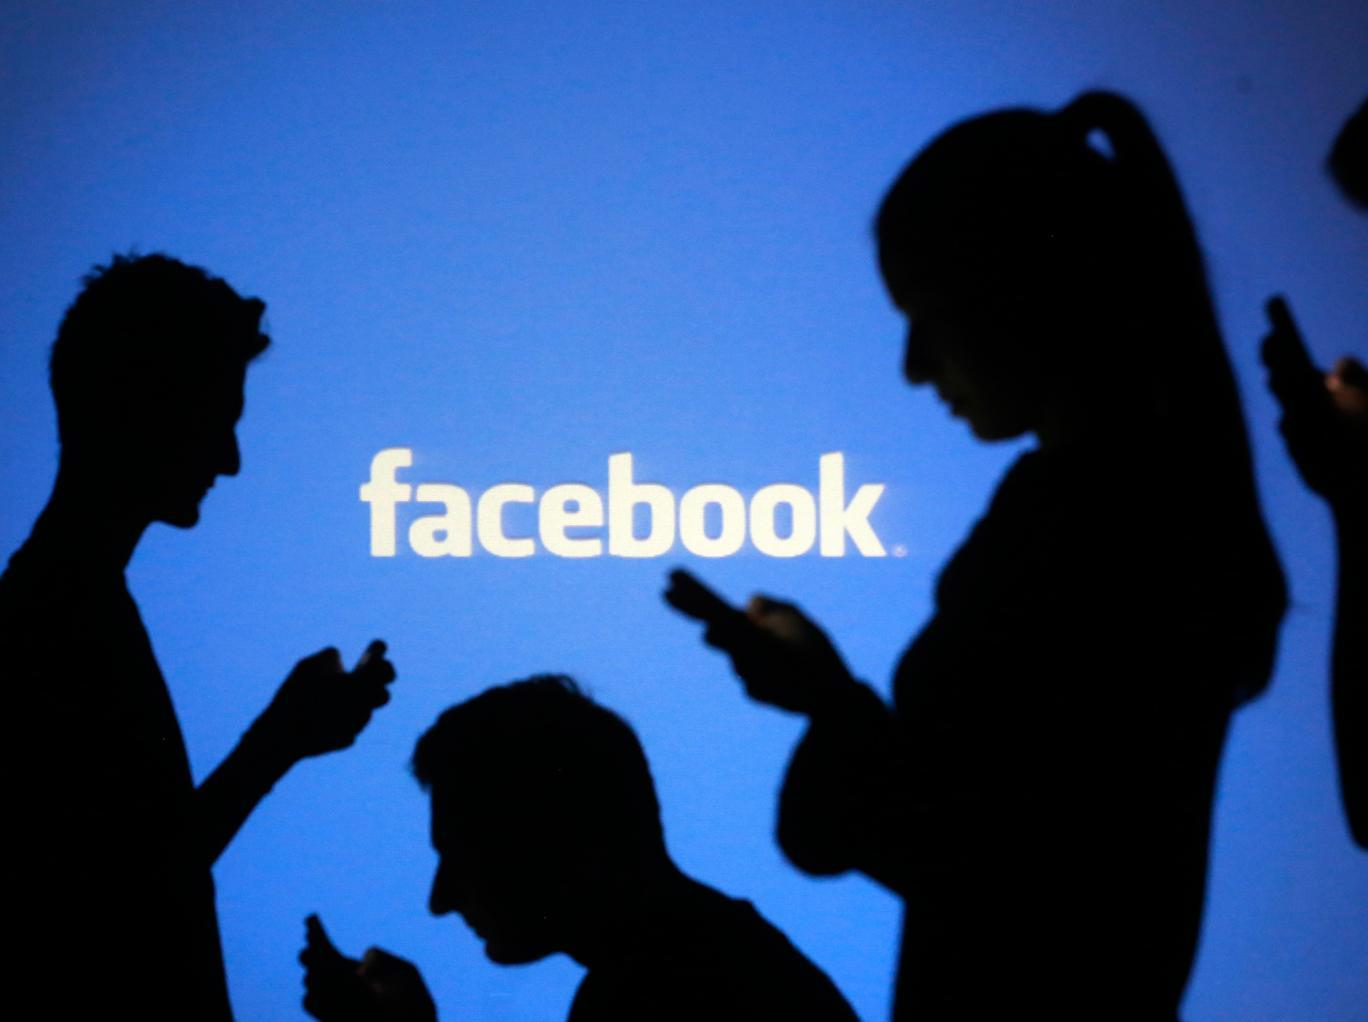 Facebook will now track you even if you're not a Facebook user